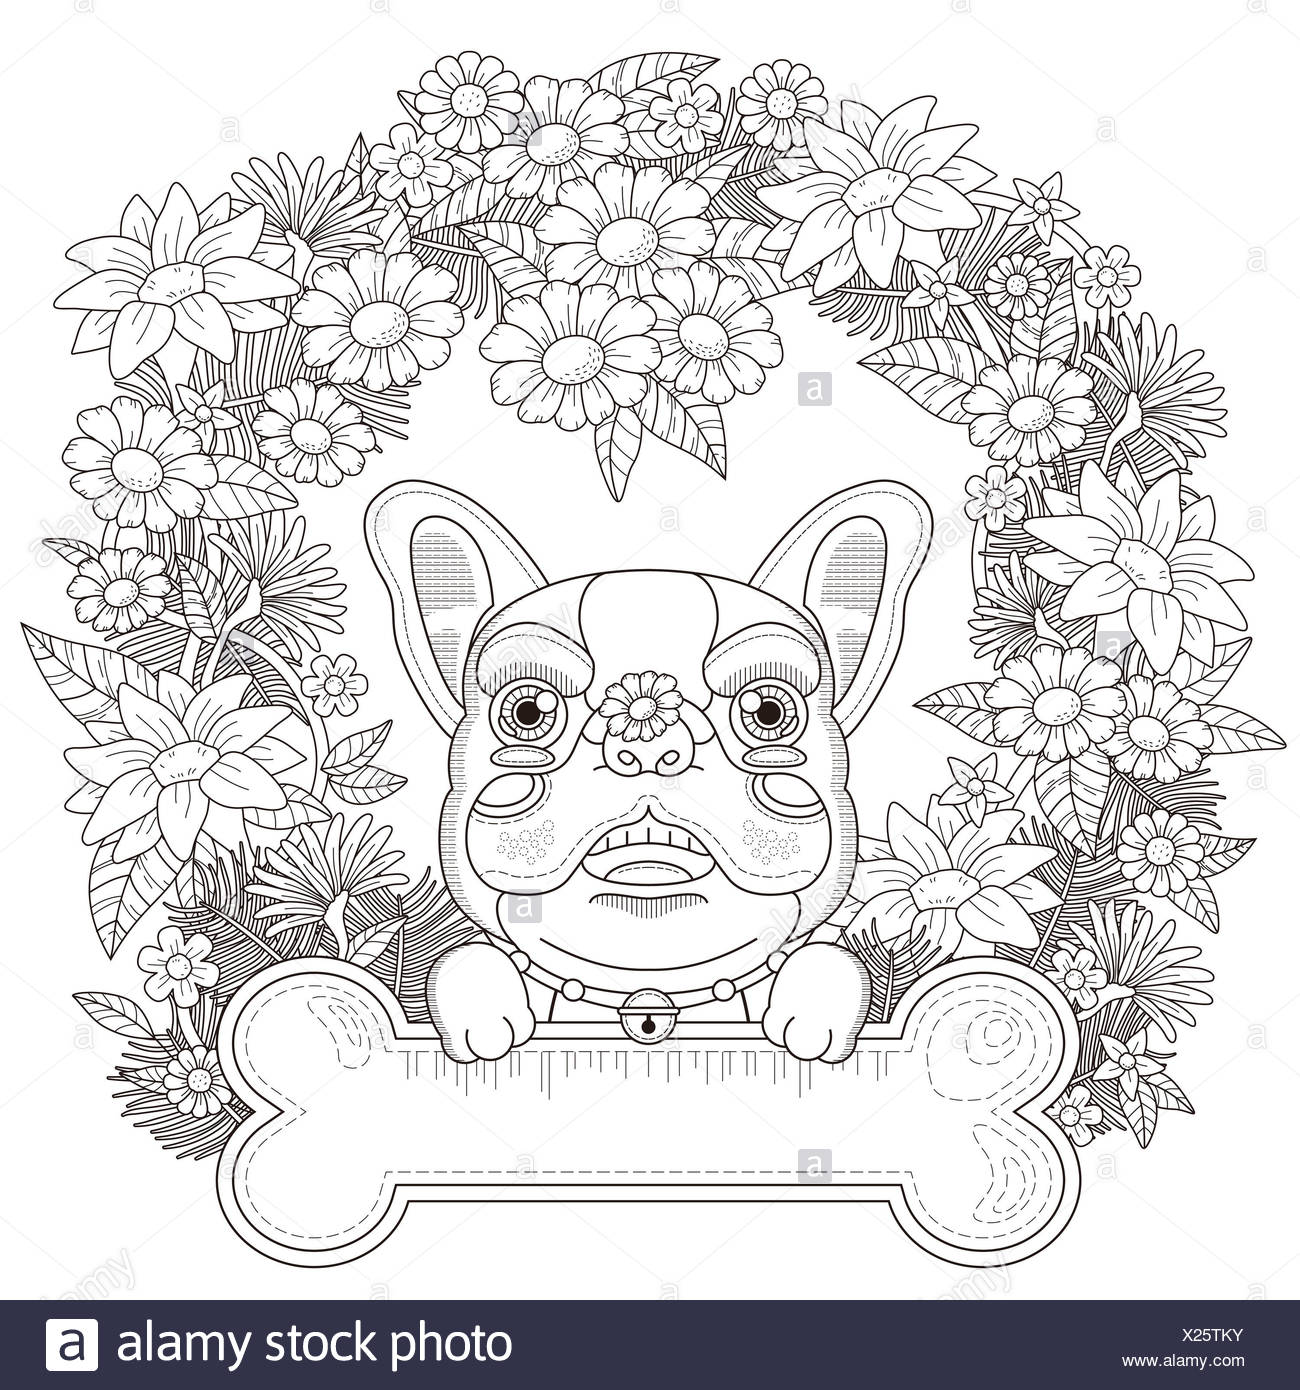 Line Drawing Puppy Stock Photos & Line Drawing Puppy Stock Images ...